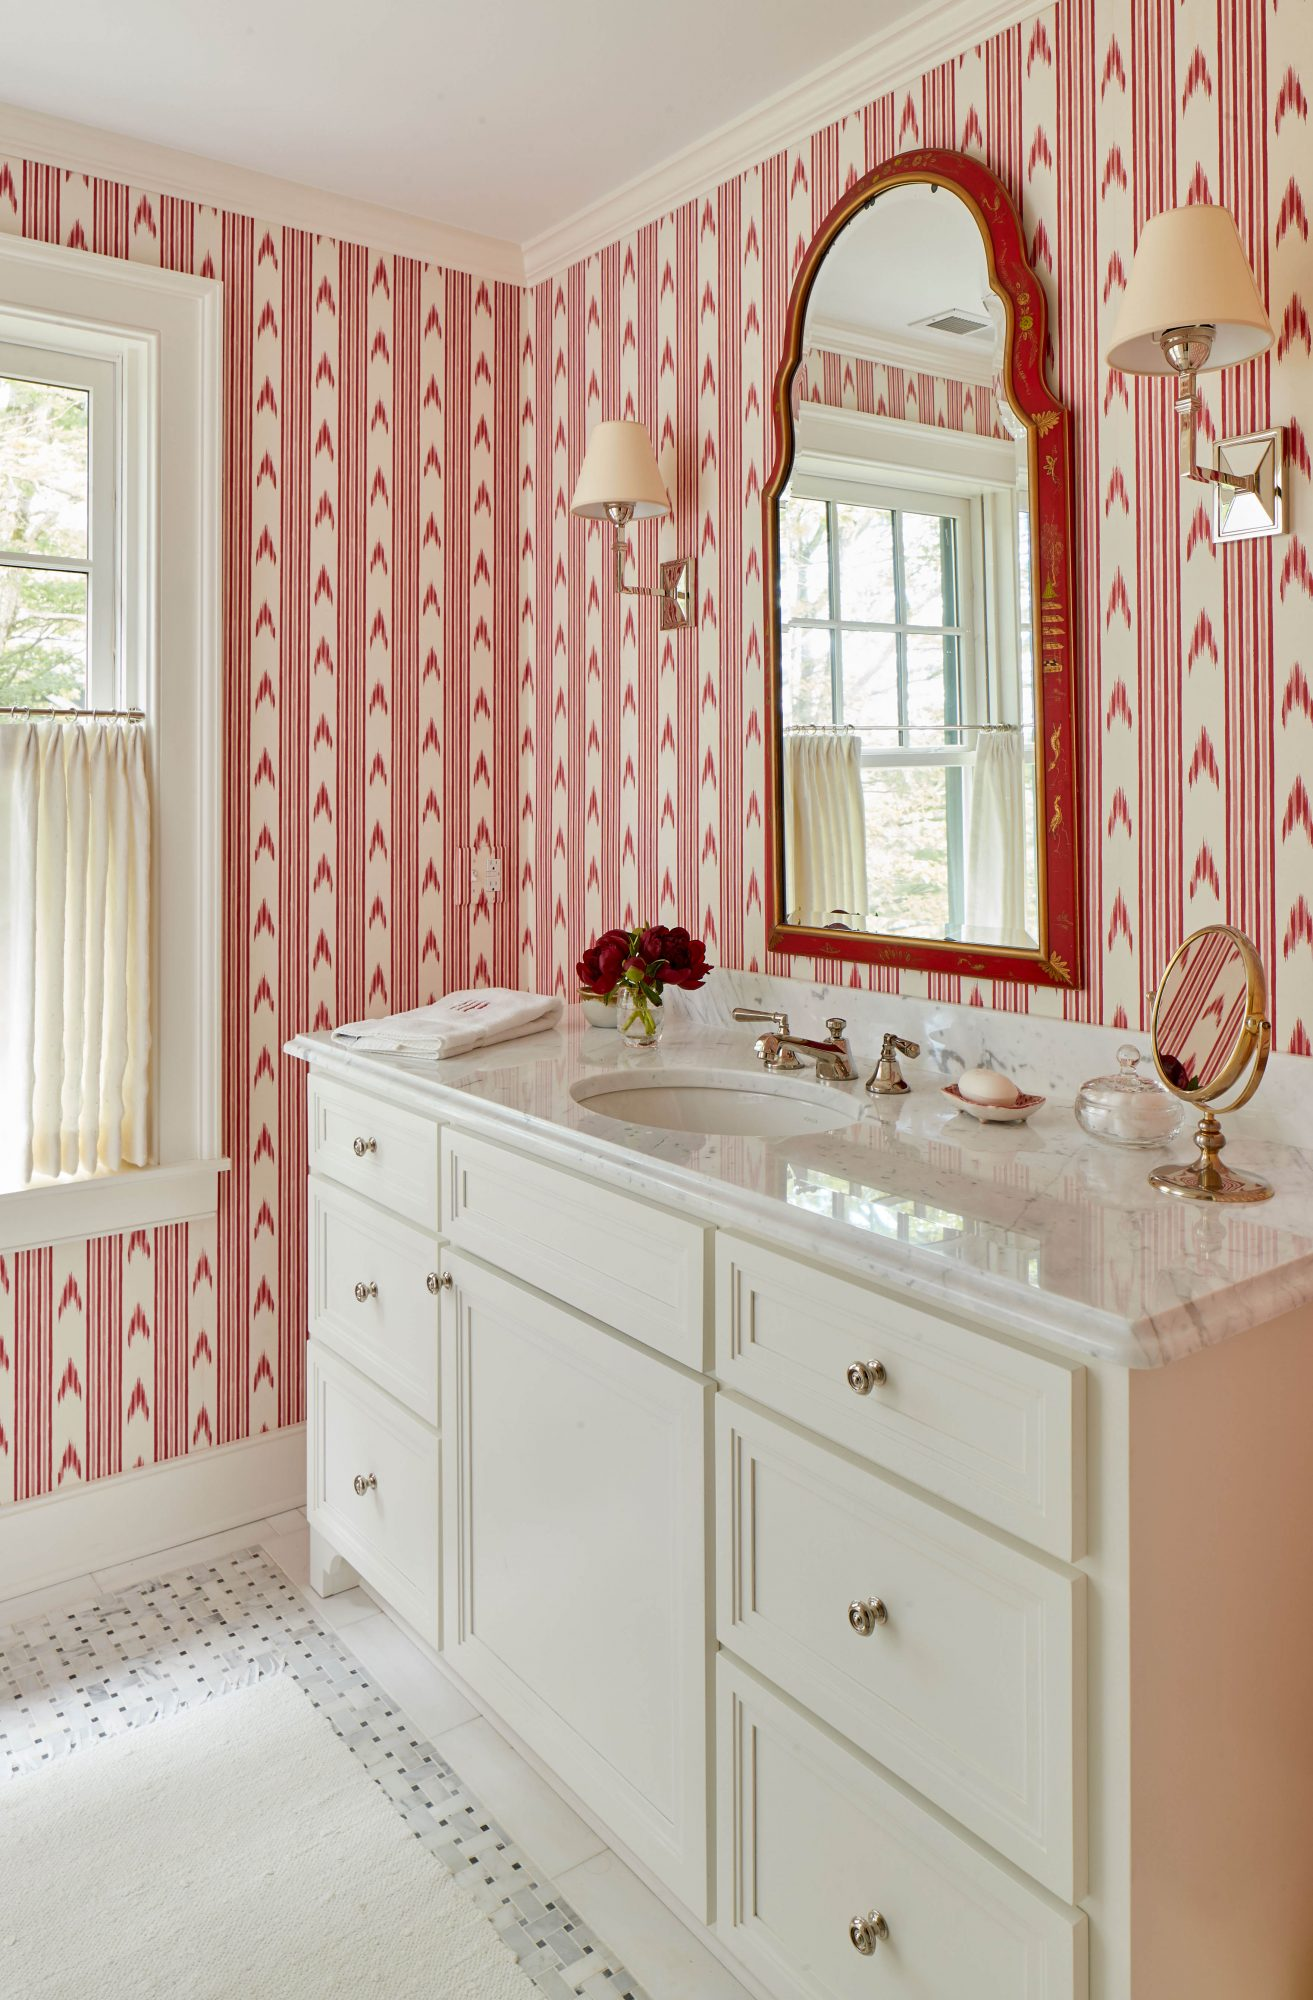 Red Ikat Pattern Wallpaper in Bathroom of Mountain House